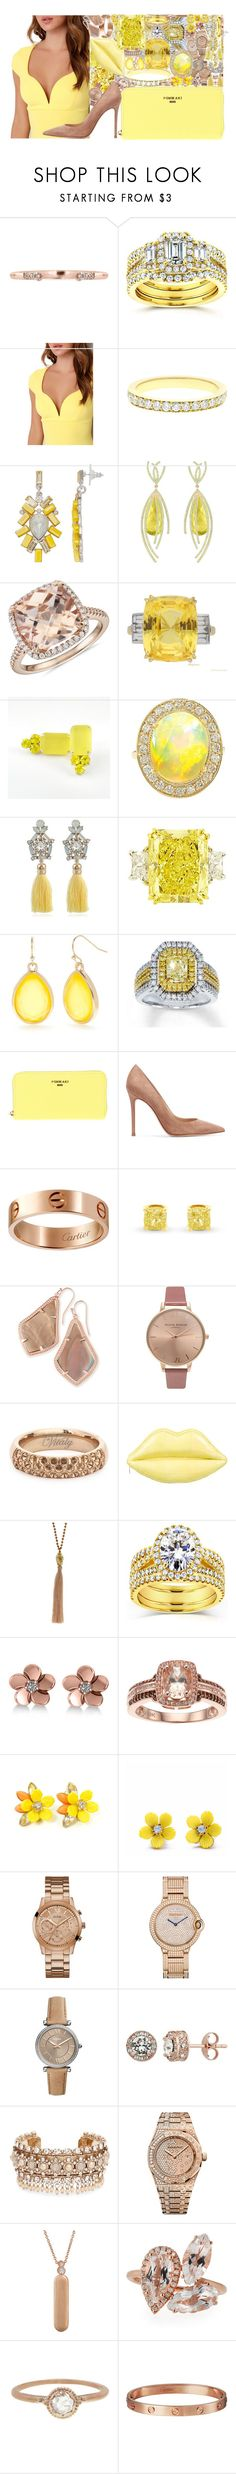 """Untitled #4843"" by brooke-evans12 ❤ liked on Polyvore featuring Kobelli, LULUS, Simply Vera, Arya Esha, Blue Nile, Caterina Mariani, New Directions, POMIKAKI, Gianvito Rossi and Cartier"